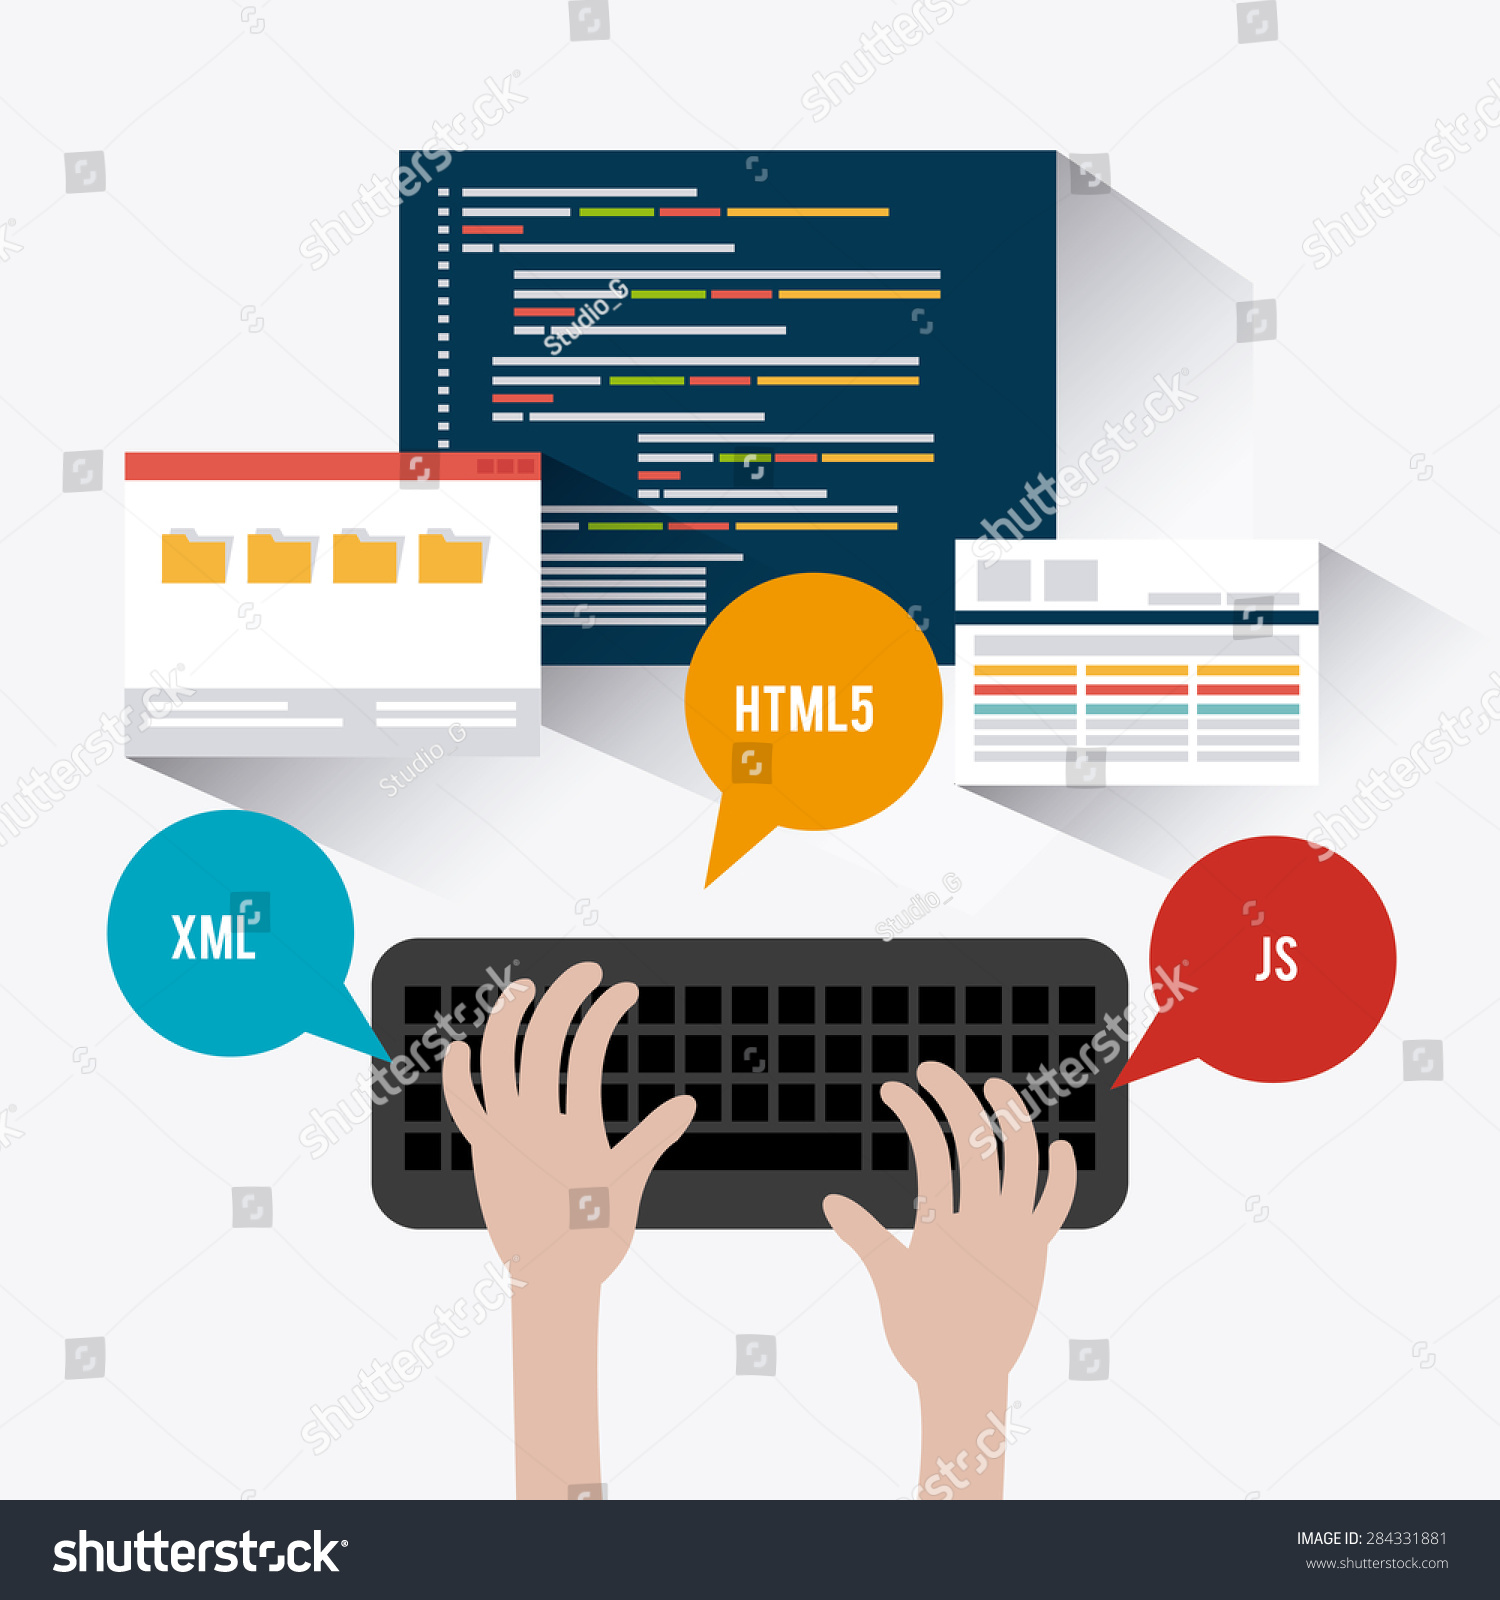 Software design over white background vector illustration Vector image software